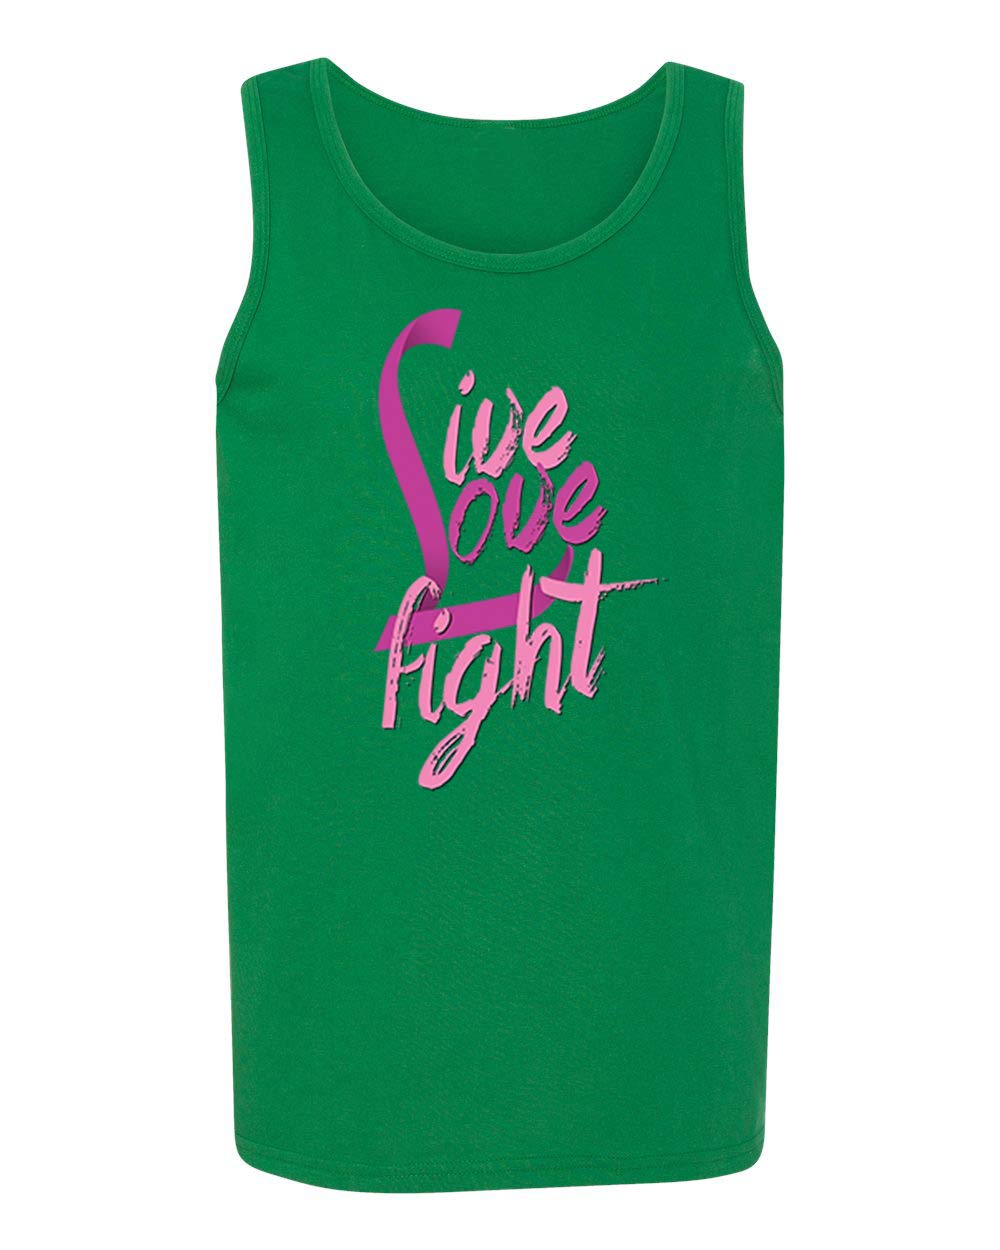 Breast Cancer Awareness Live Love Fight Falcons Tank Tops For Shirts